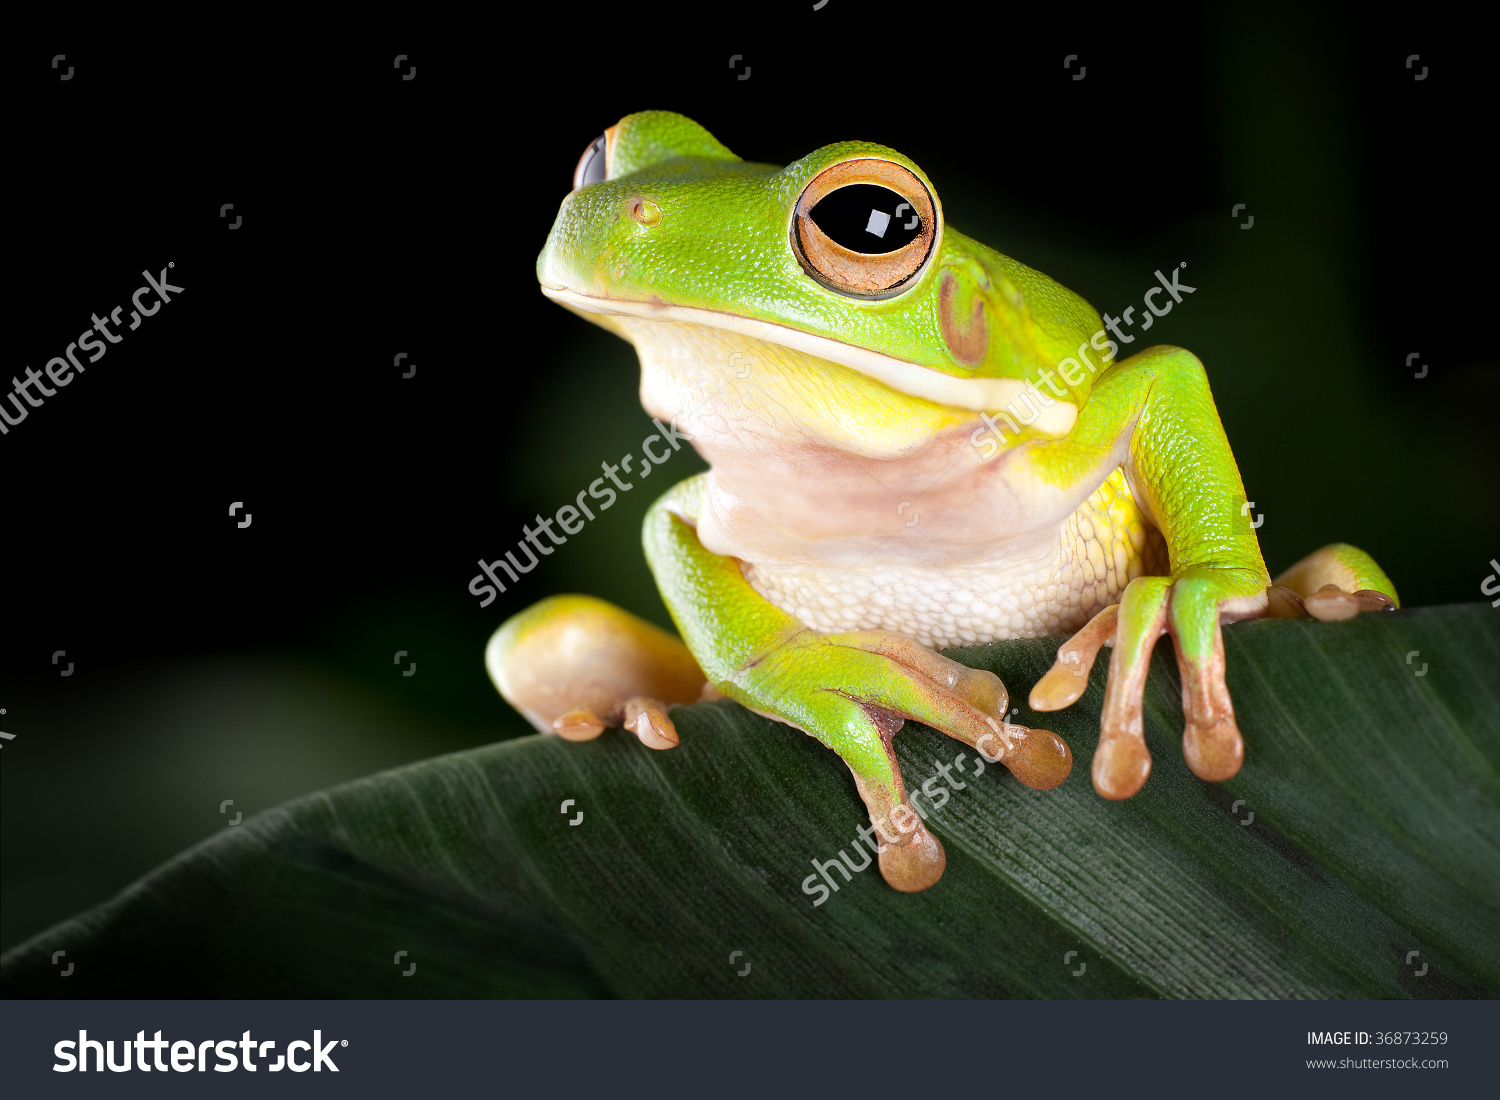 White-lipped Tree Frog clipart #11, Download drawings